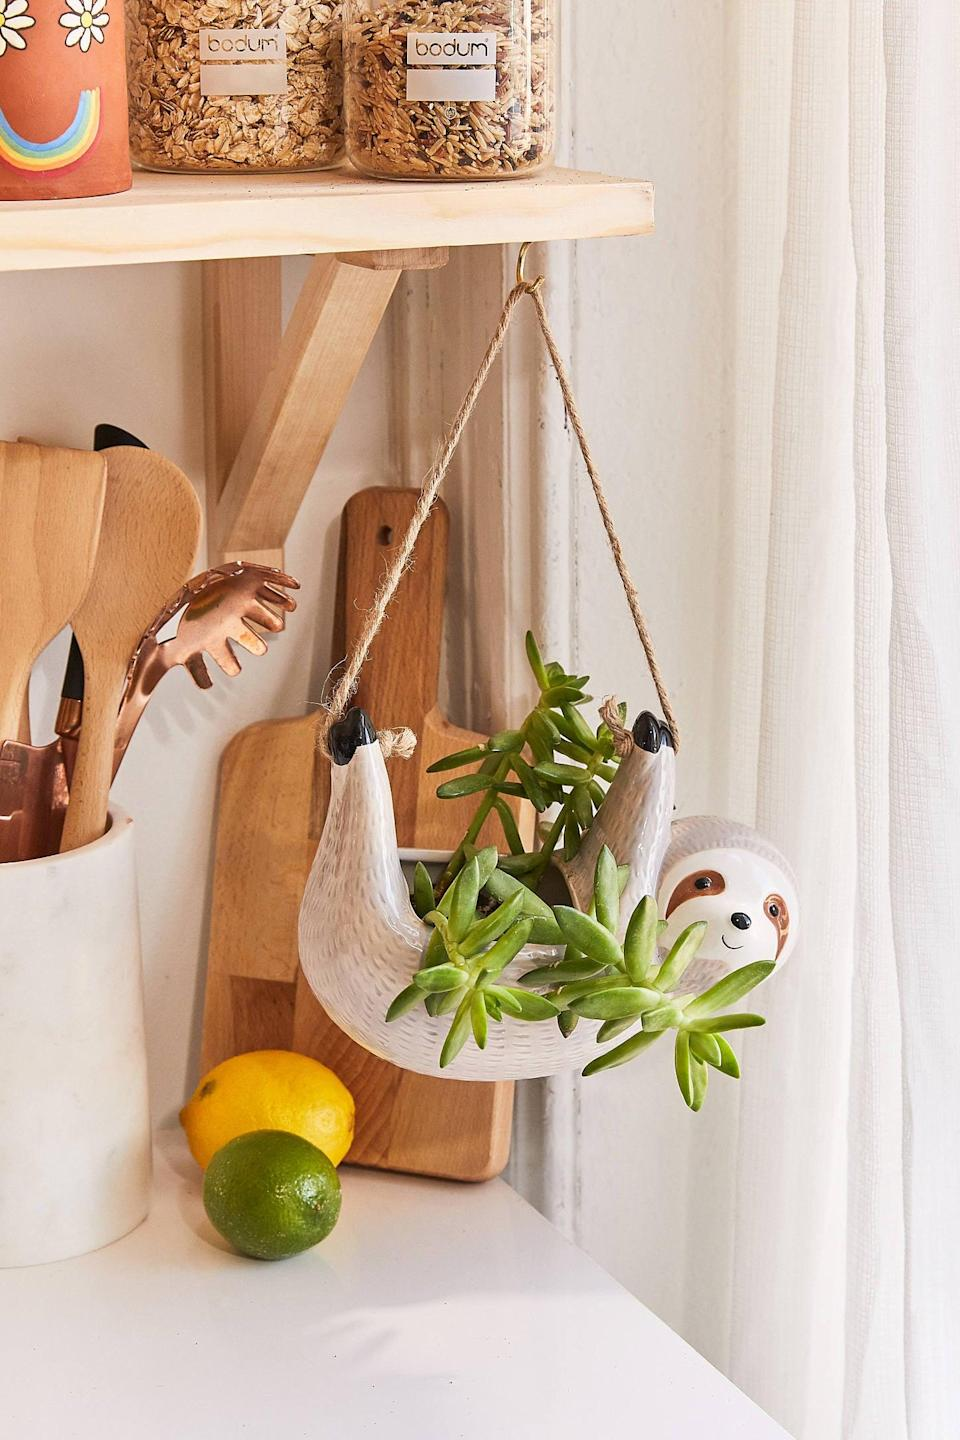 """<p>We all know someone who needs this <a href=""""https://www.popsugar.com/buy/Sloth-Hanging-Planter-555098?p_name=Sloth%20Hanging%20Planter&retailer=urbanoutfitters.com&pid=555098&price=18&evar1=casa%3Aus&evar9=47315088&evar98=https%3A%2F%2Fwww.popsugar.com%2Fhome%2Fphoto-gallery%2F47315088%2Fimage%2F47315178%2FSloth-Hanging-Planter&list1=shopping%2Curban%20outfitters%2Capartments%2Csmall%20space%20living%2Capartment%20living%2Chome%20shopping&prop13=mobile&pdata=1"""" class=""""link rapid-noclick-resp"""" rel=""""nofollow noopener"""" target=""""_blank"""" data-ylk=""""slk:Sloth Hanging Planter"""">Sloth Hanging Planter</a> ($18) in their life.</p>"""